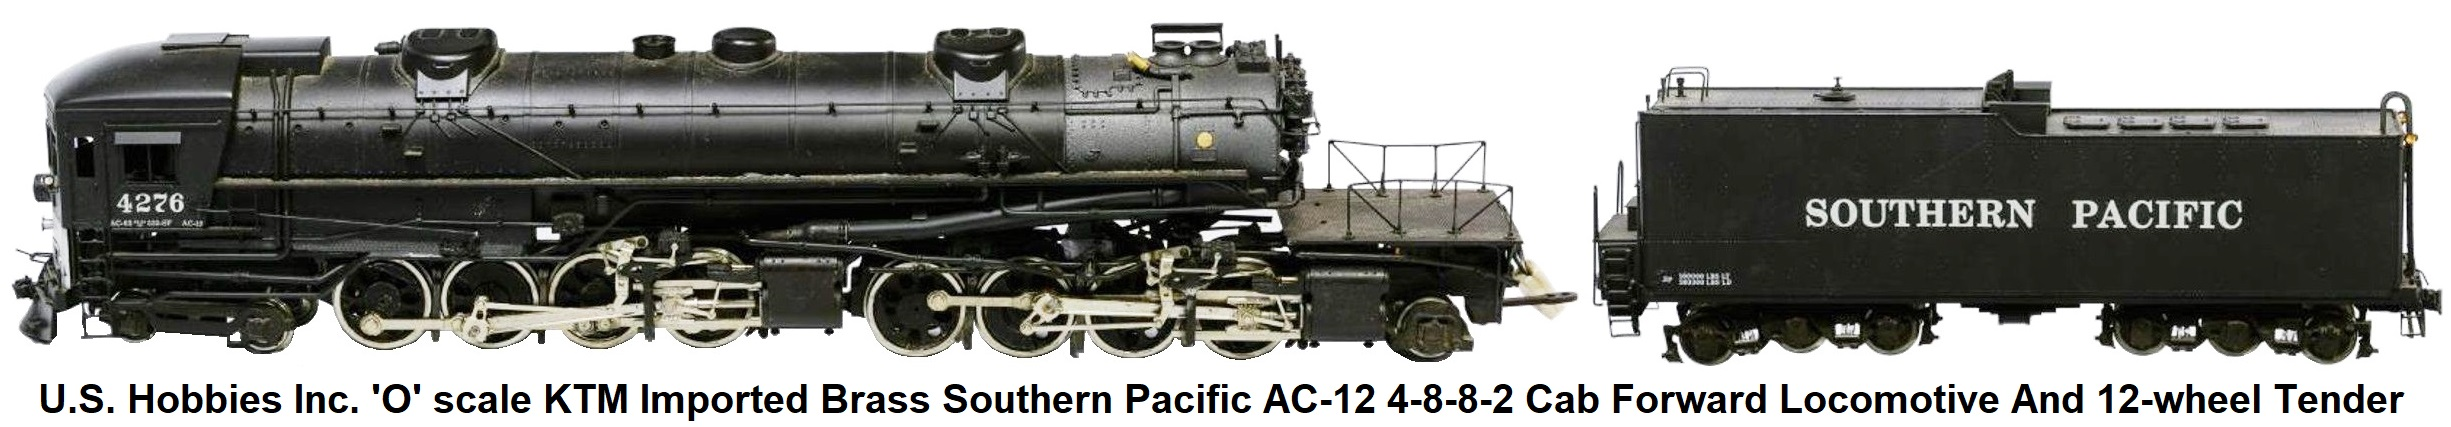 U.S. Hobbies Inc. 'O' scale Brass Import KTM Southern Pacific AC-12 4-8-8-2 Cab Forward locomotive and 12-wheel tender